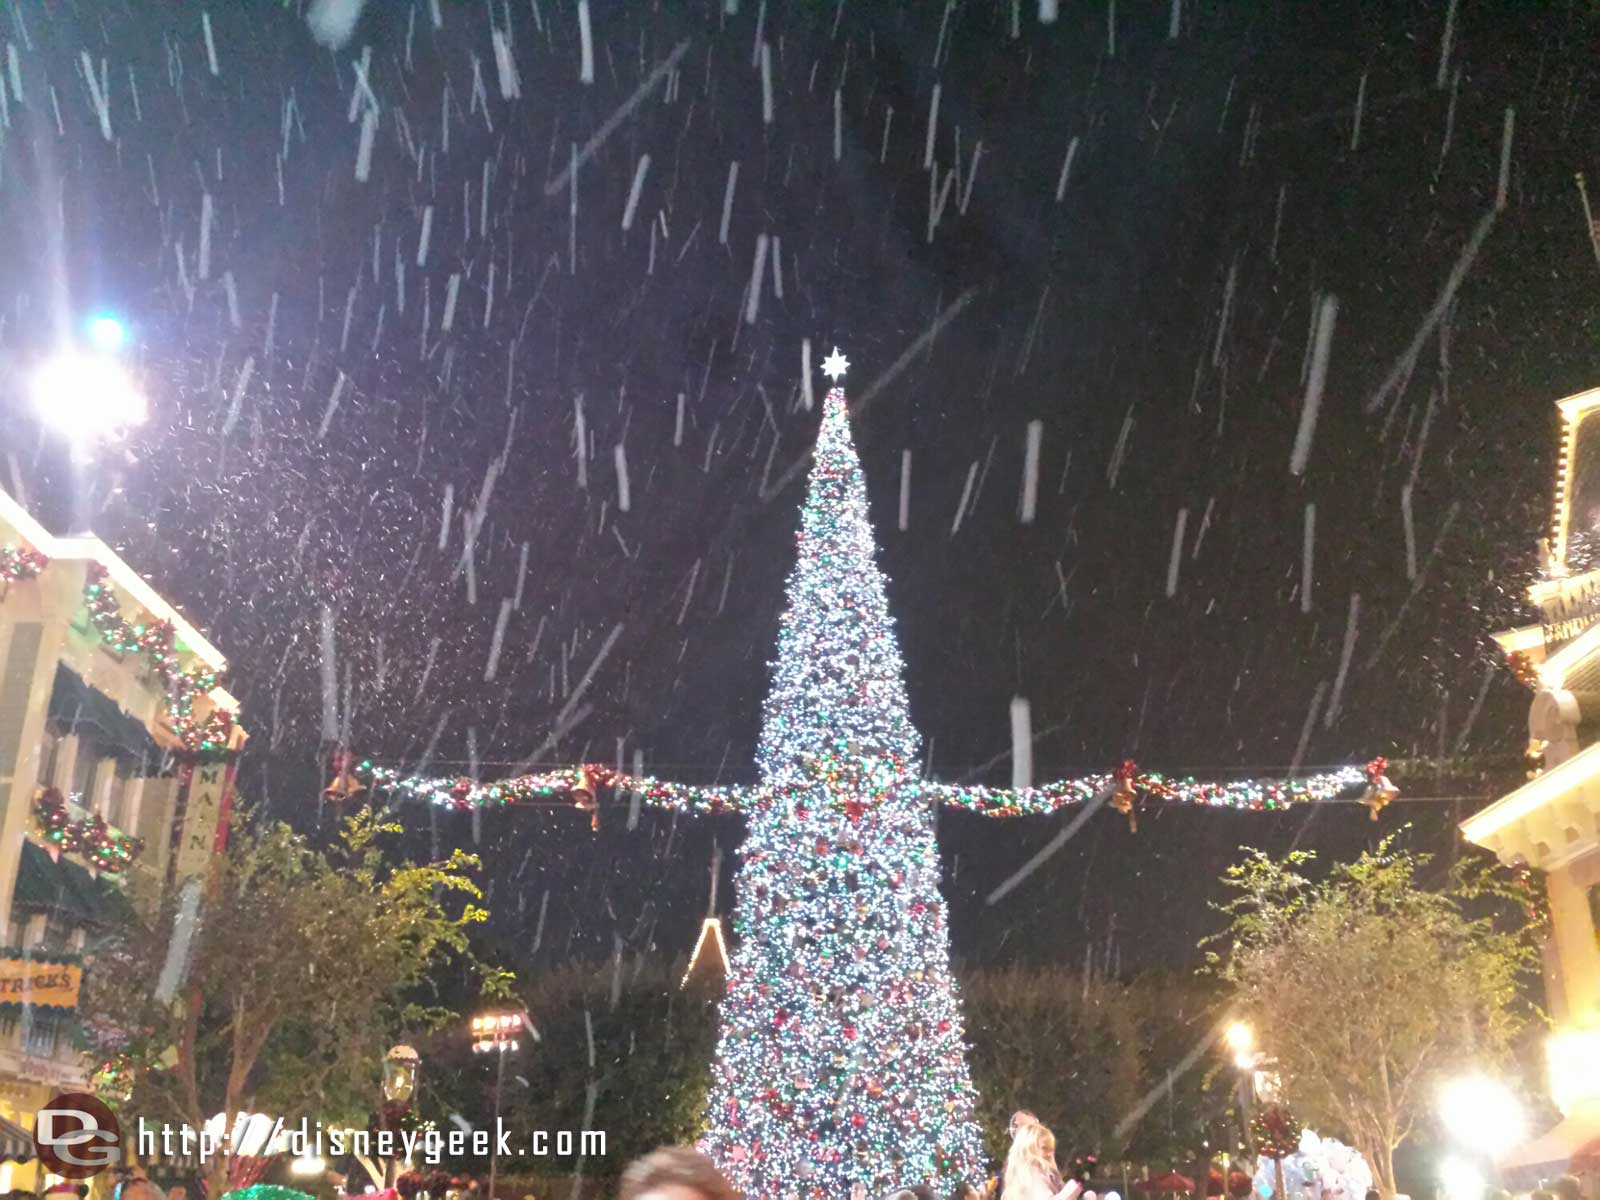 Main Street Christmas tree during snowfall #Disneyland